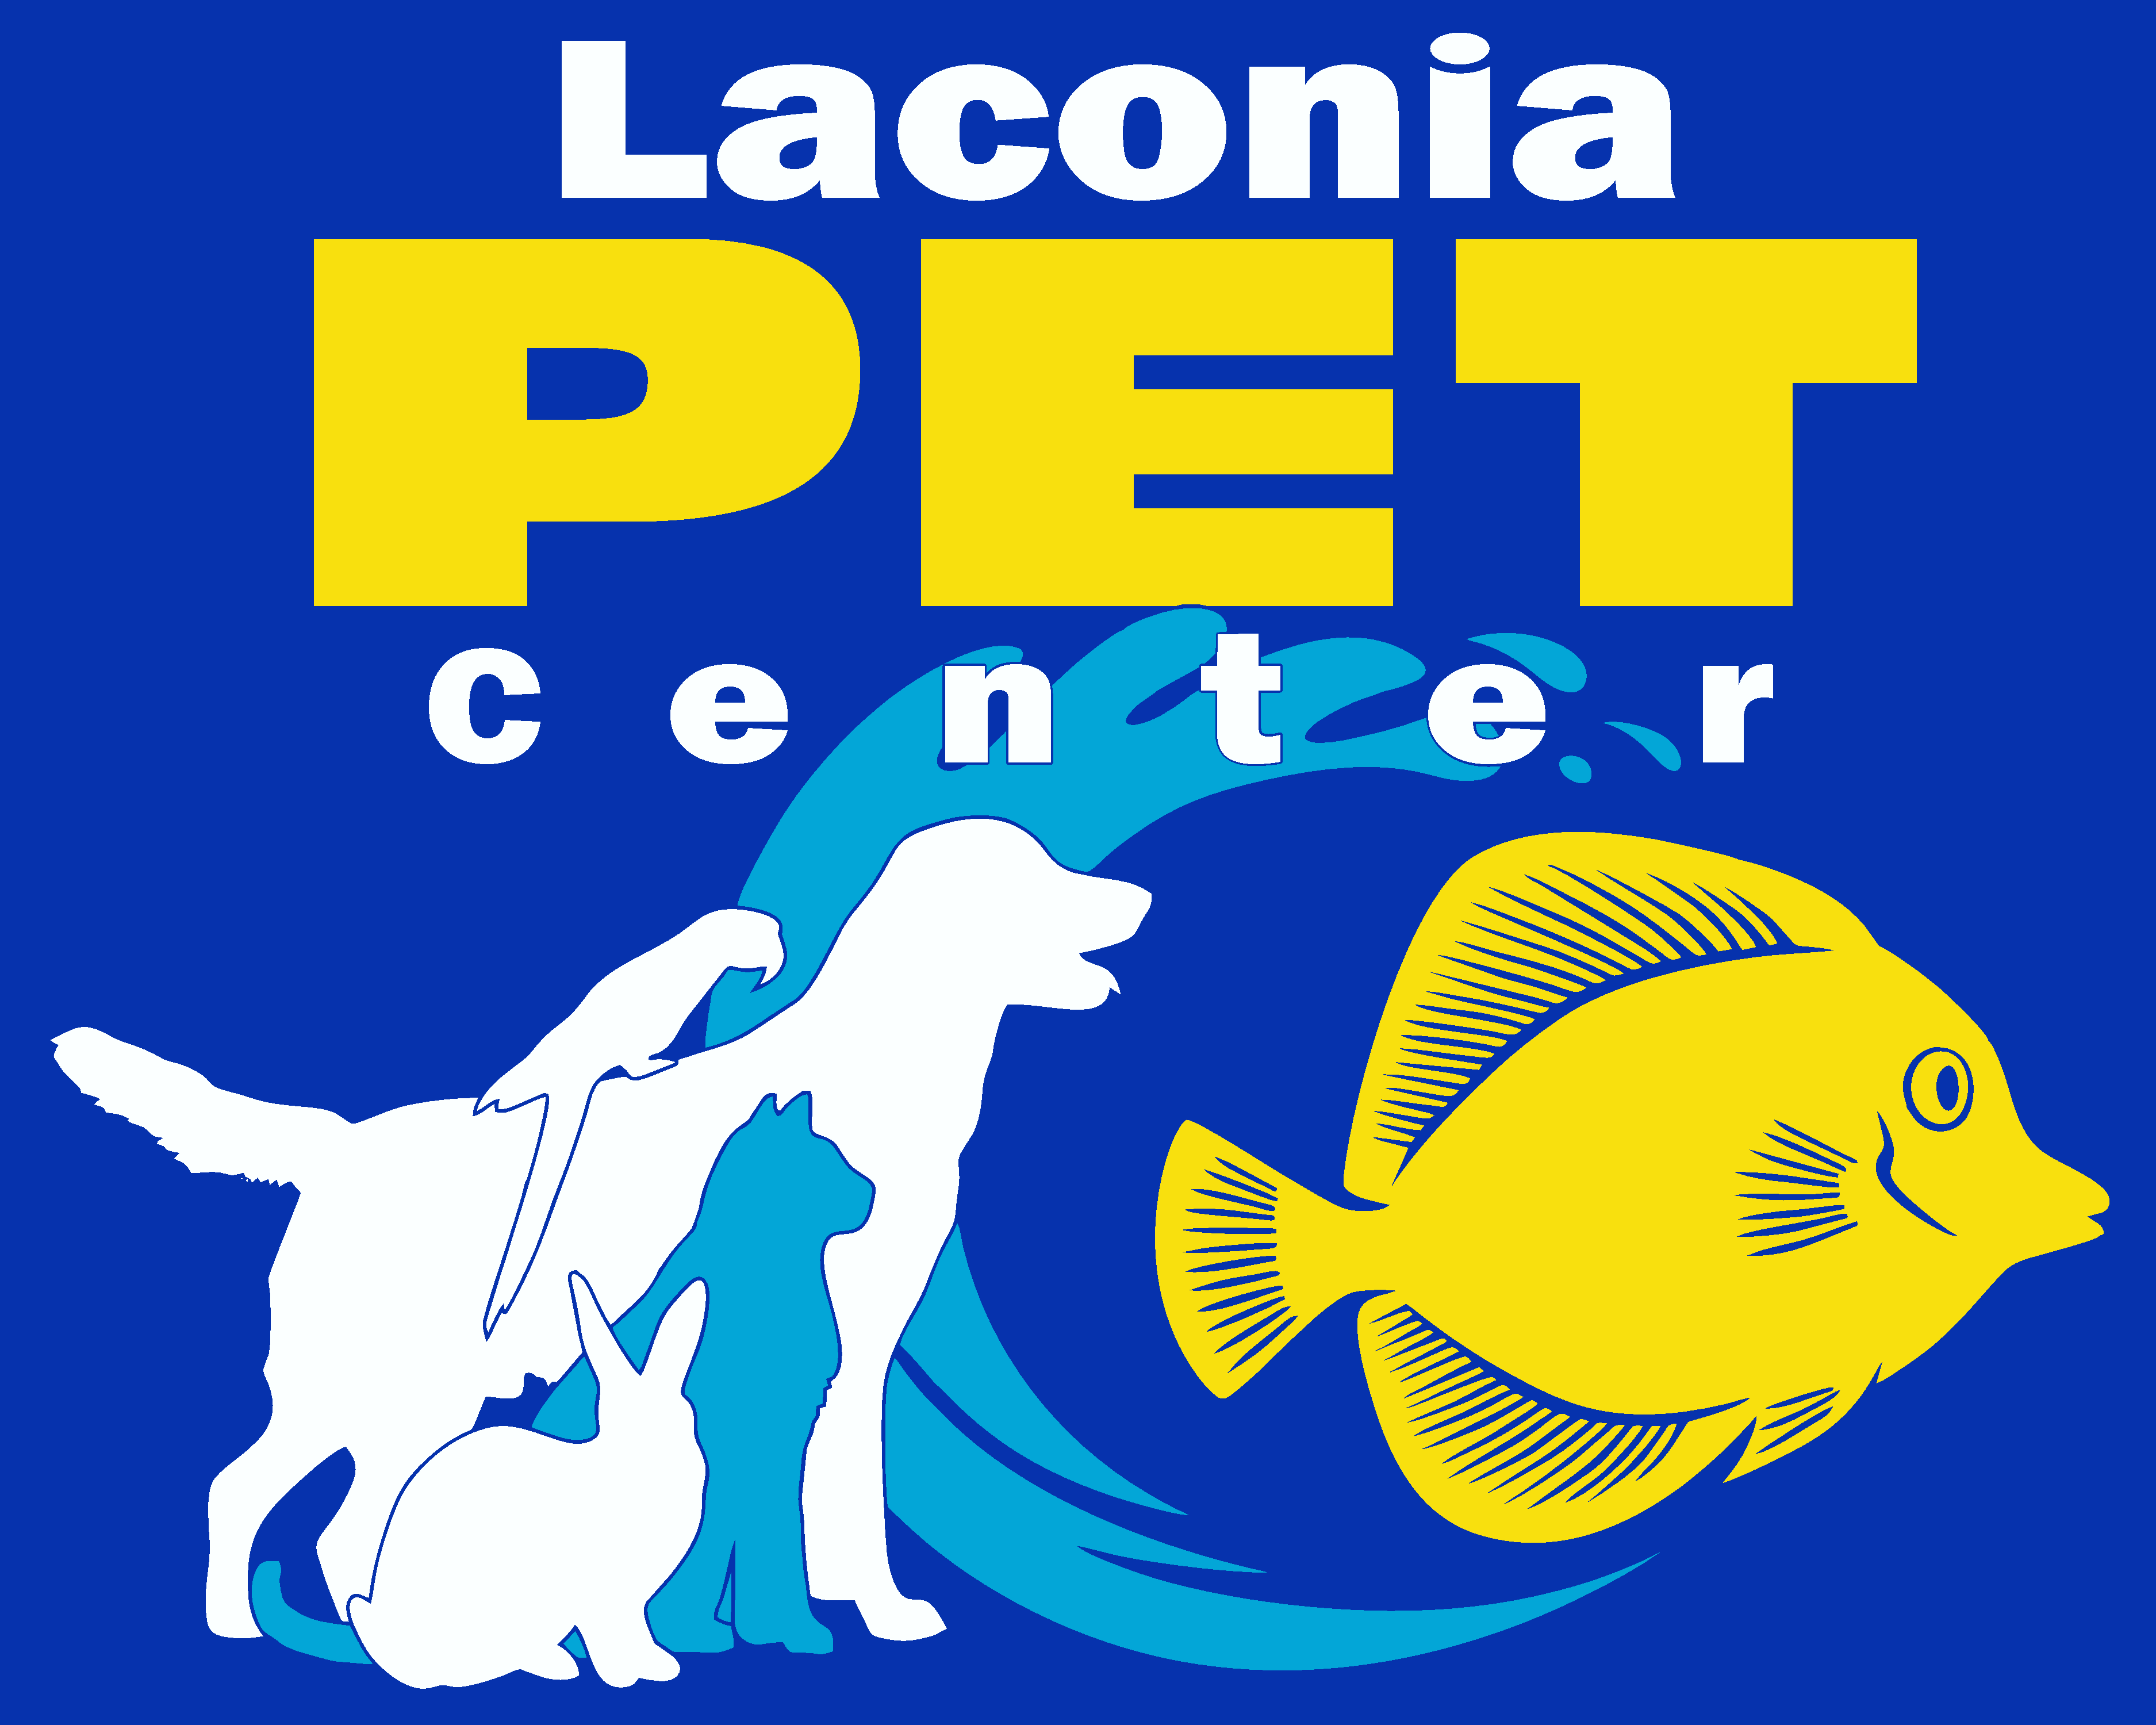 Laconia Pet Center